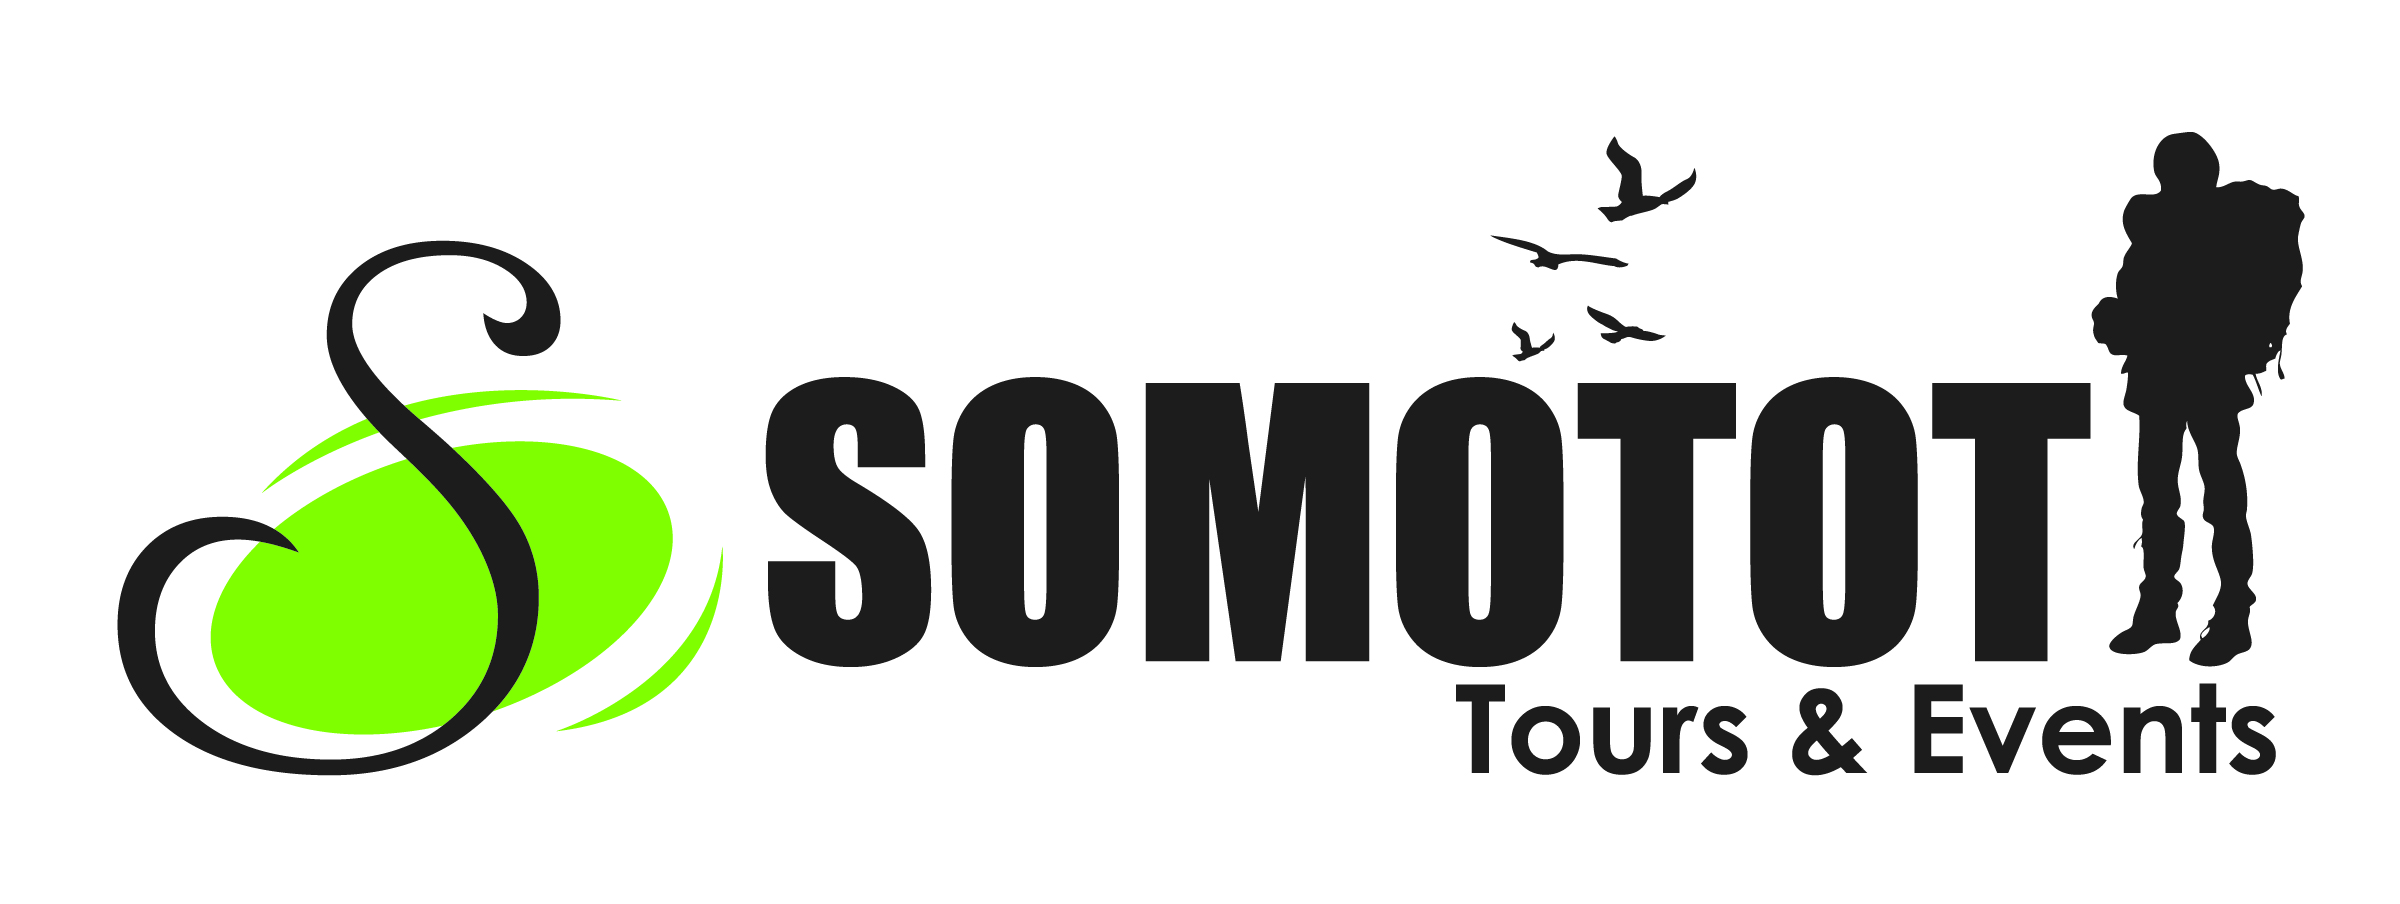 Somotot Tours & Events